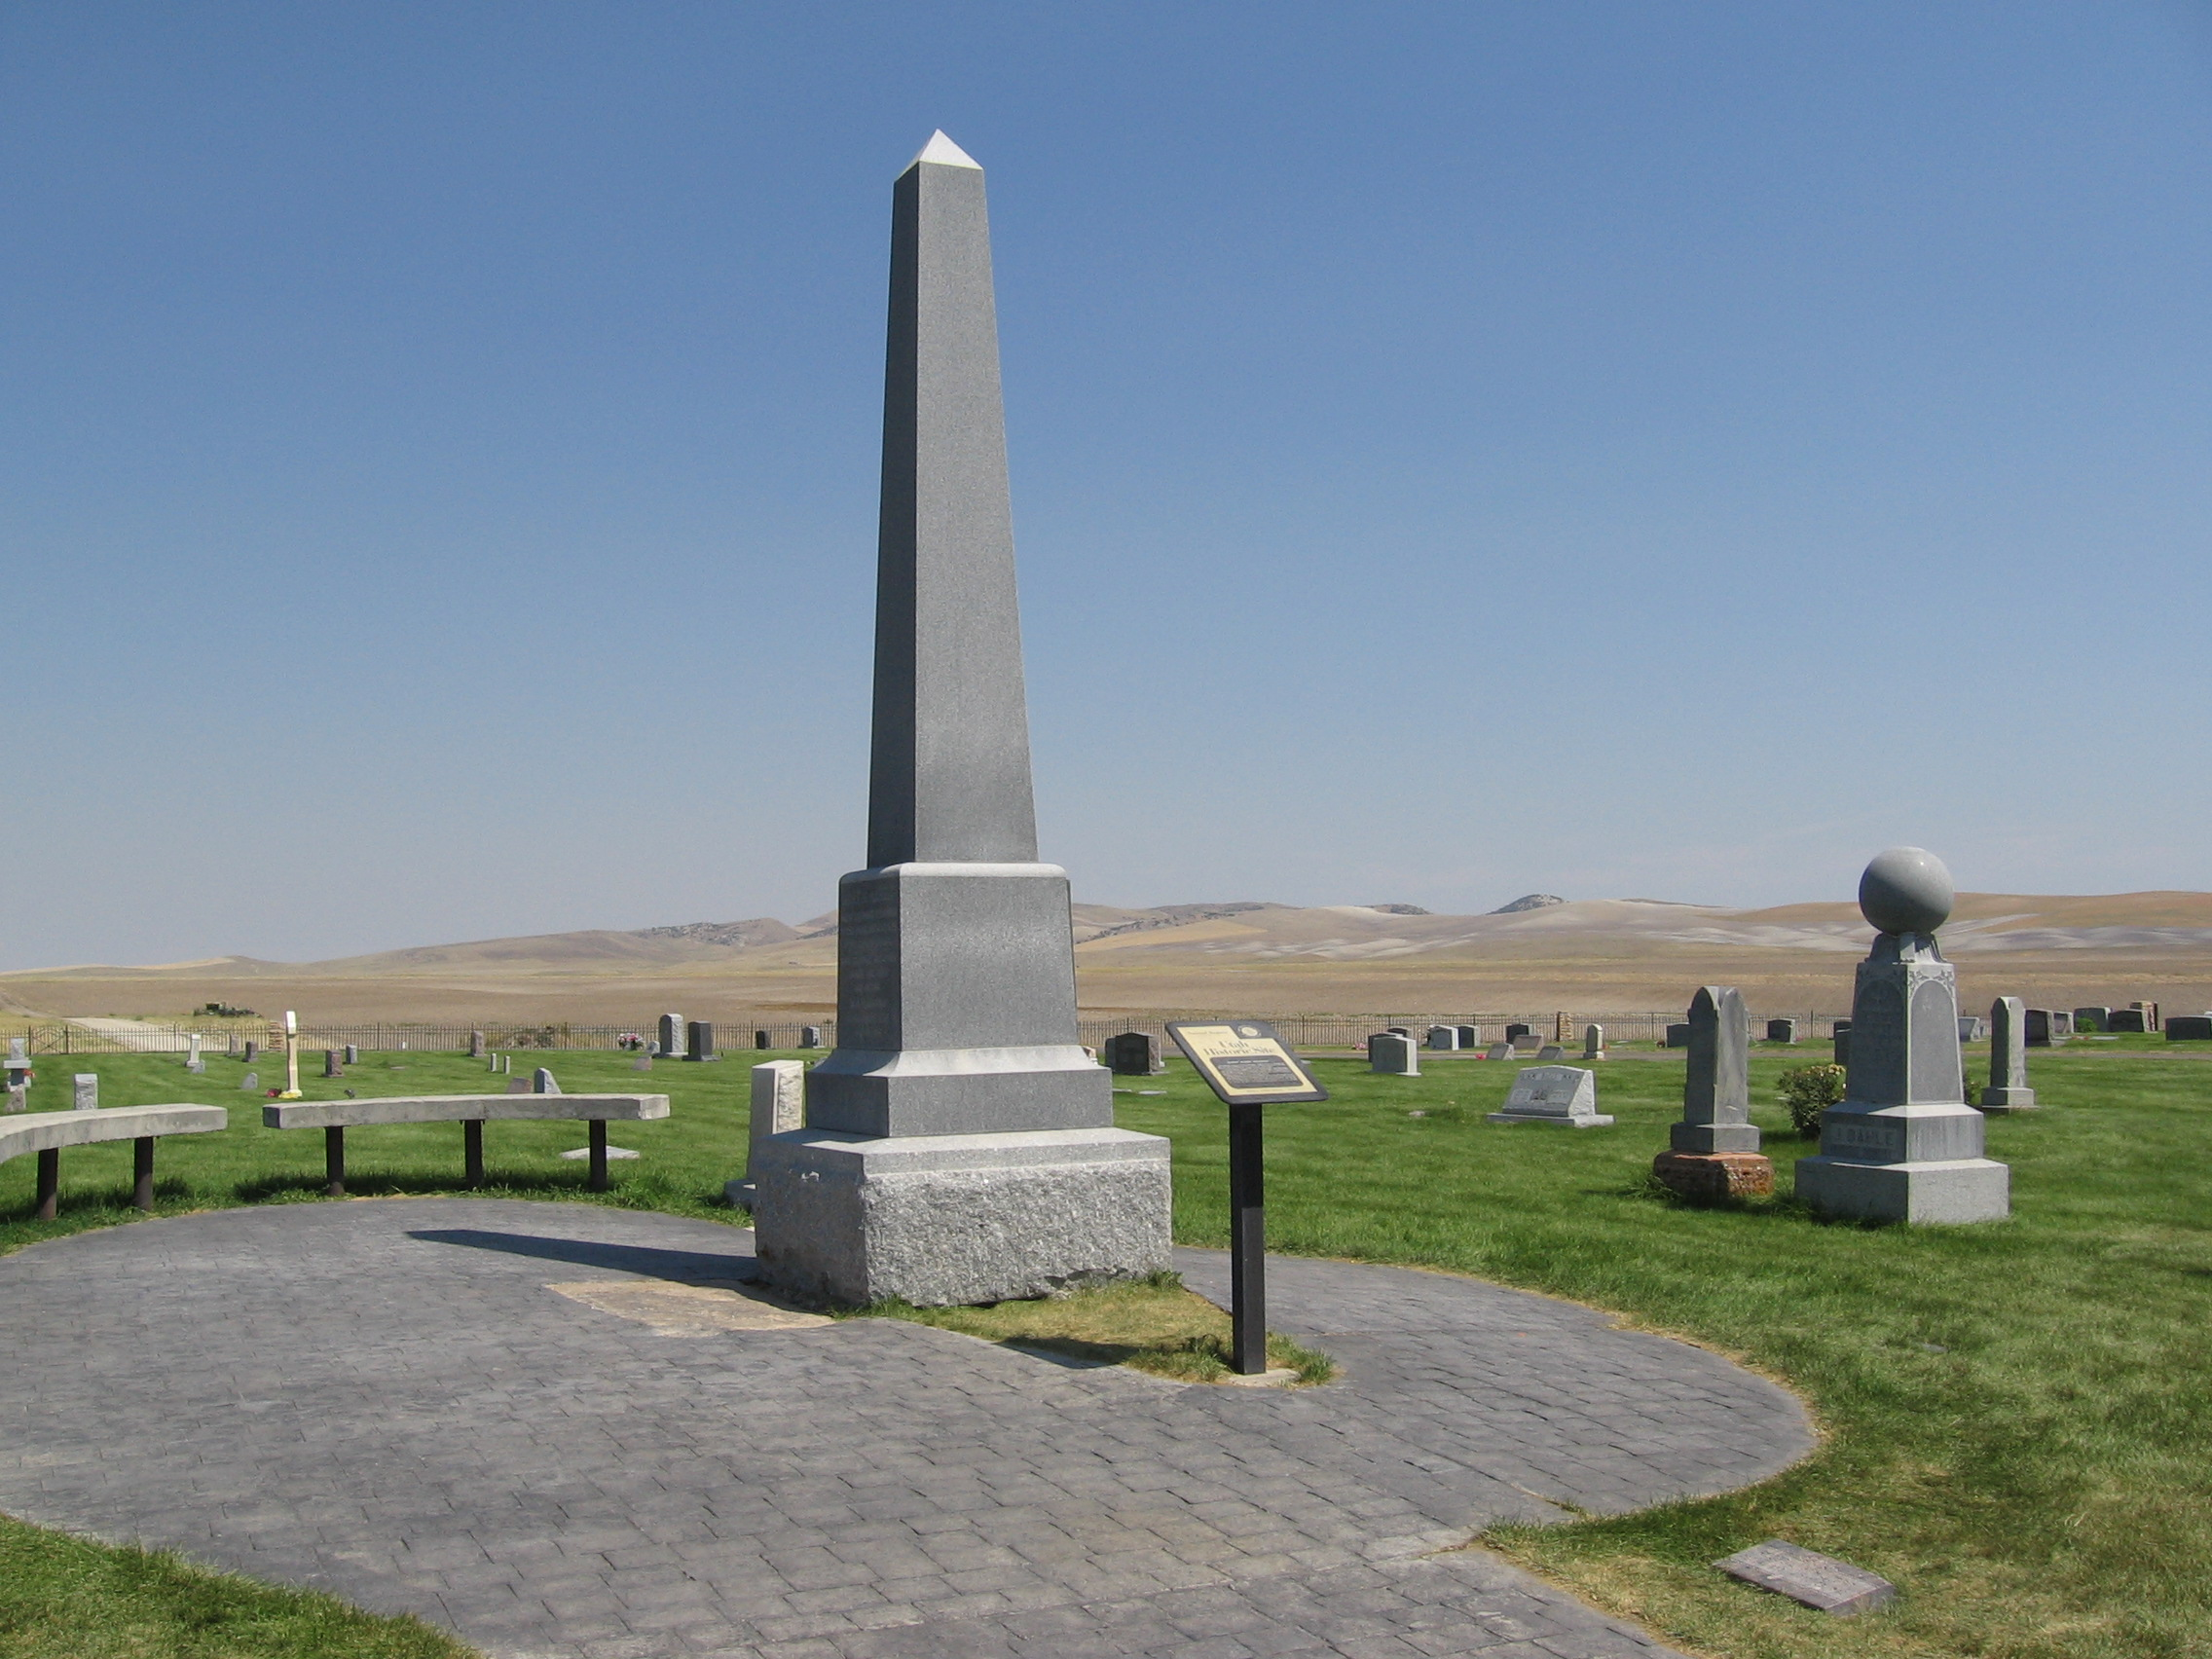 astronomy monuments - photo #11